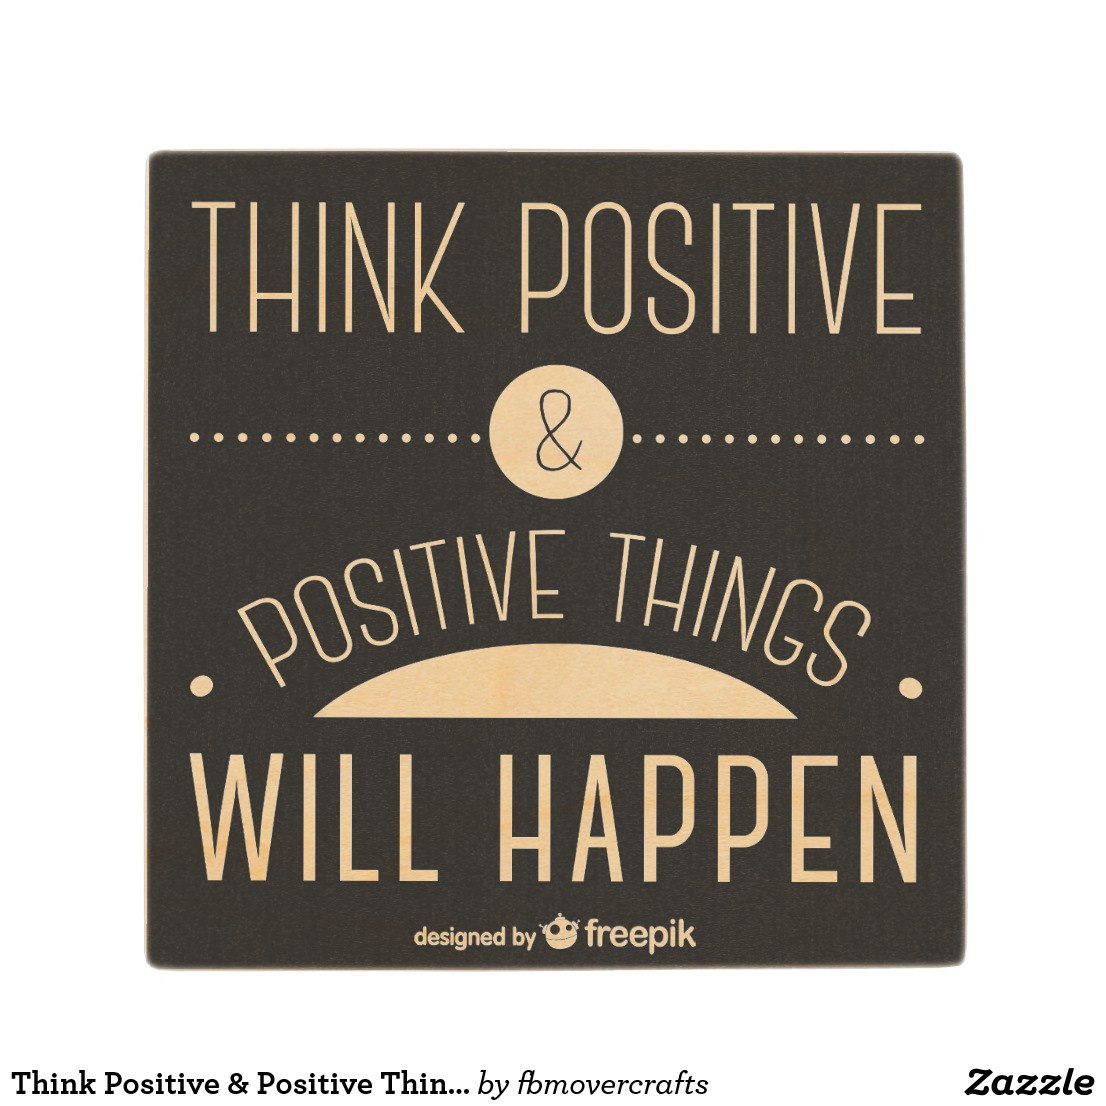 Wooden Coaster - Think Positive & Positive Things Will Happen Image